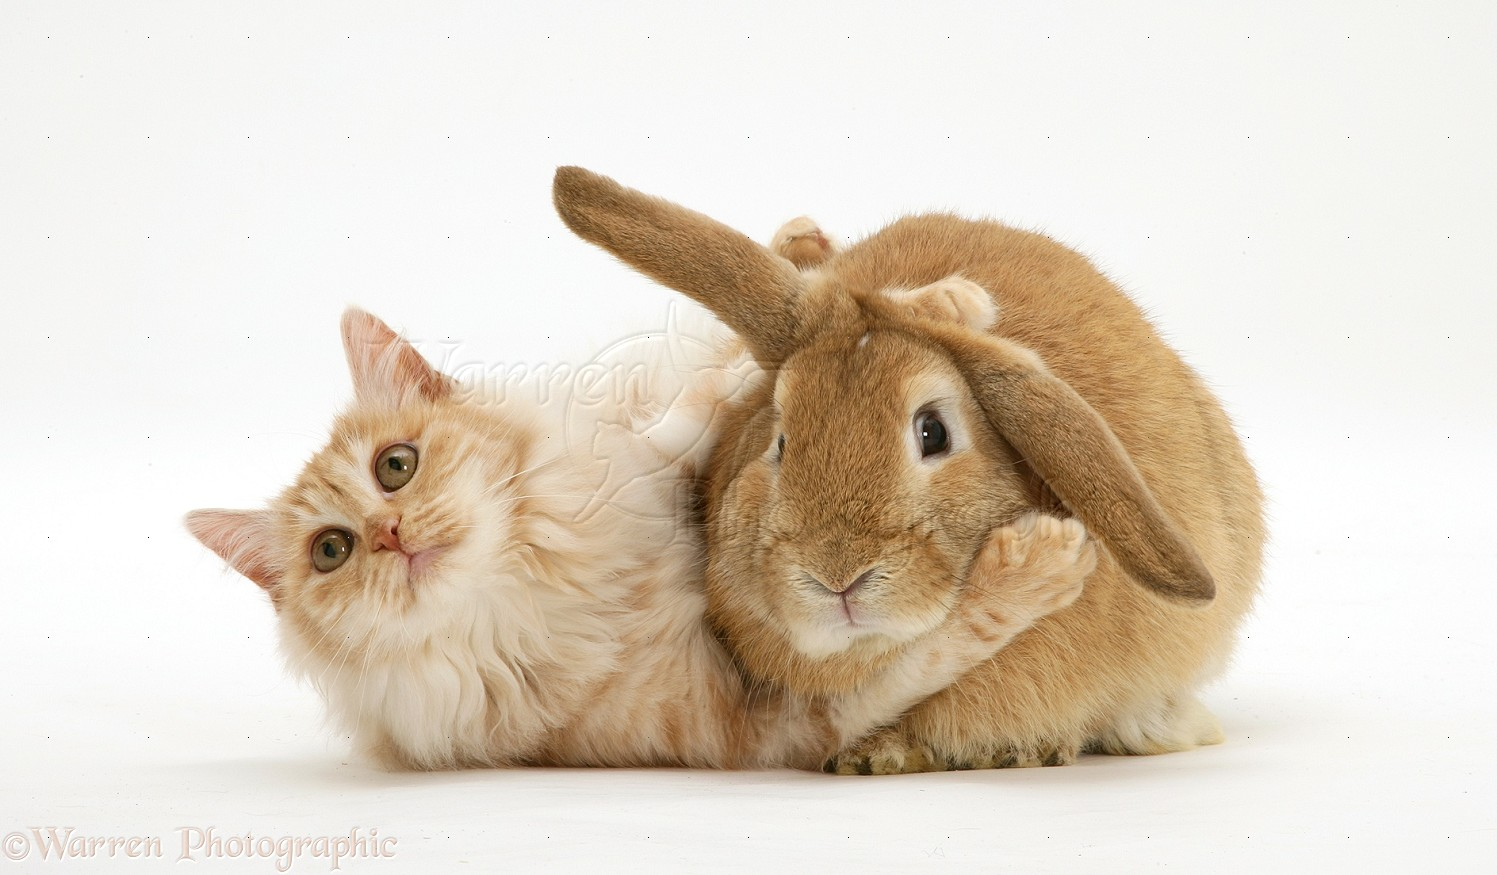 Bunny And Cat Photographsat And Sandy Lop Rabbit Home